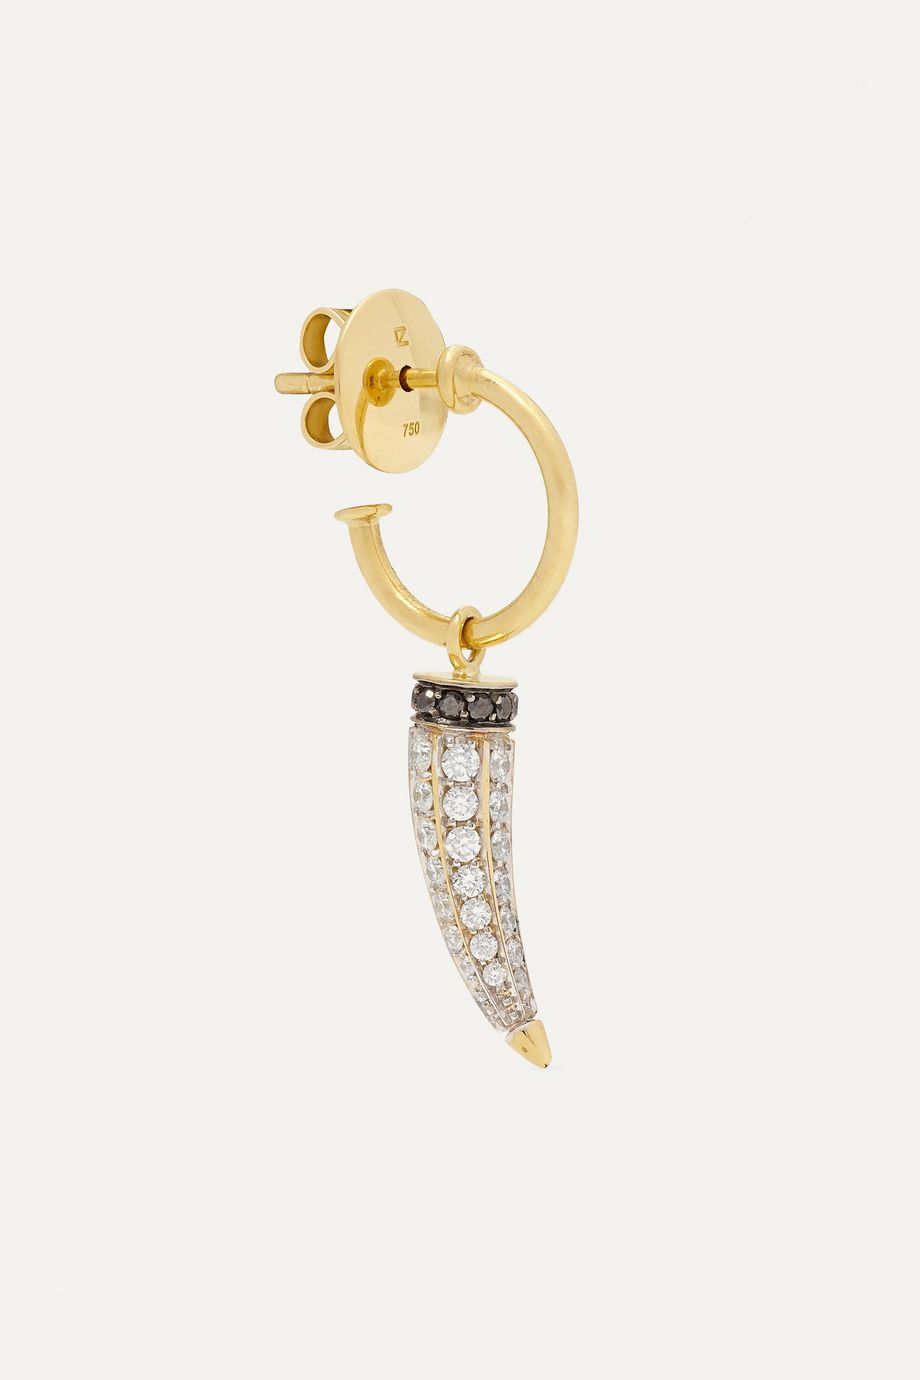 Ara Vartanian 18-karat gold diamond earring